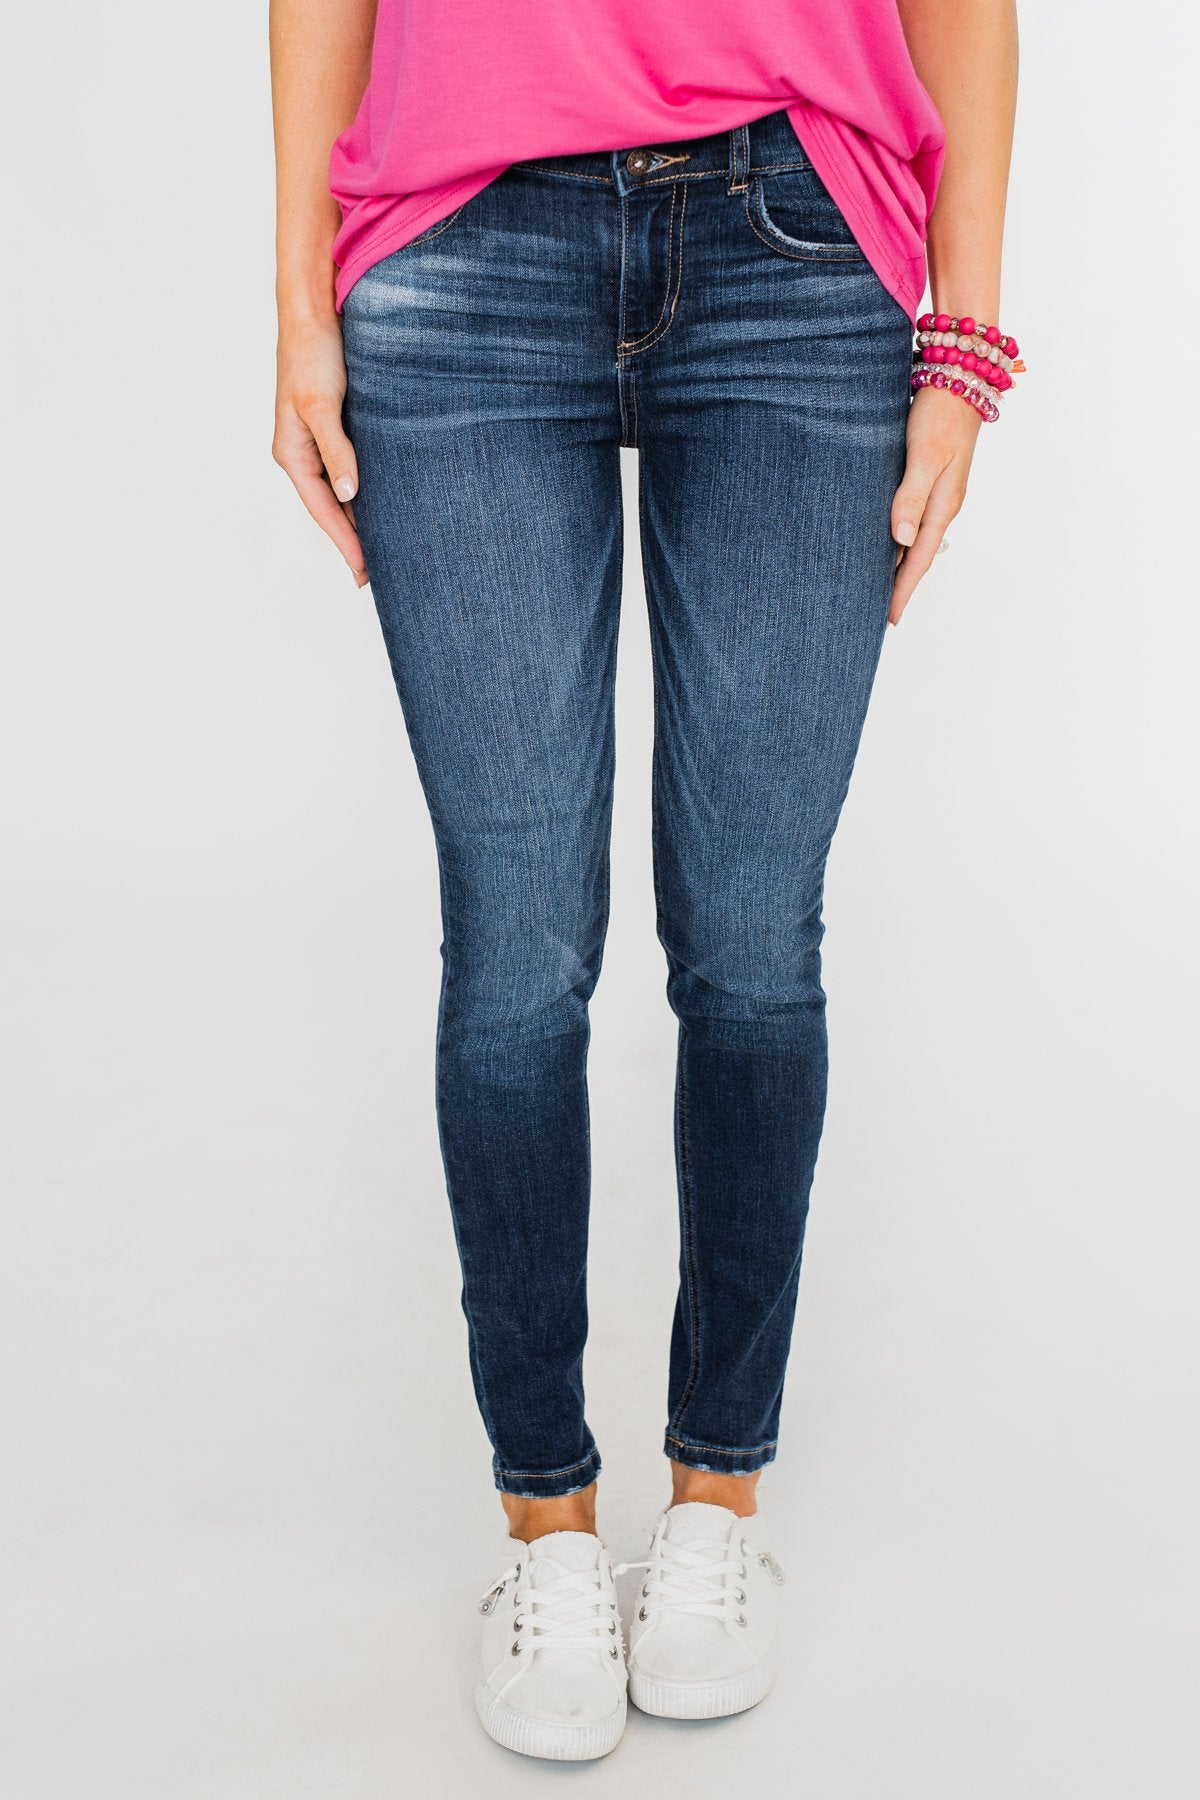 KanCan Distressed Skinny Jeans- Tiffany Wash